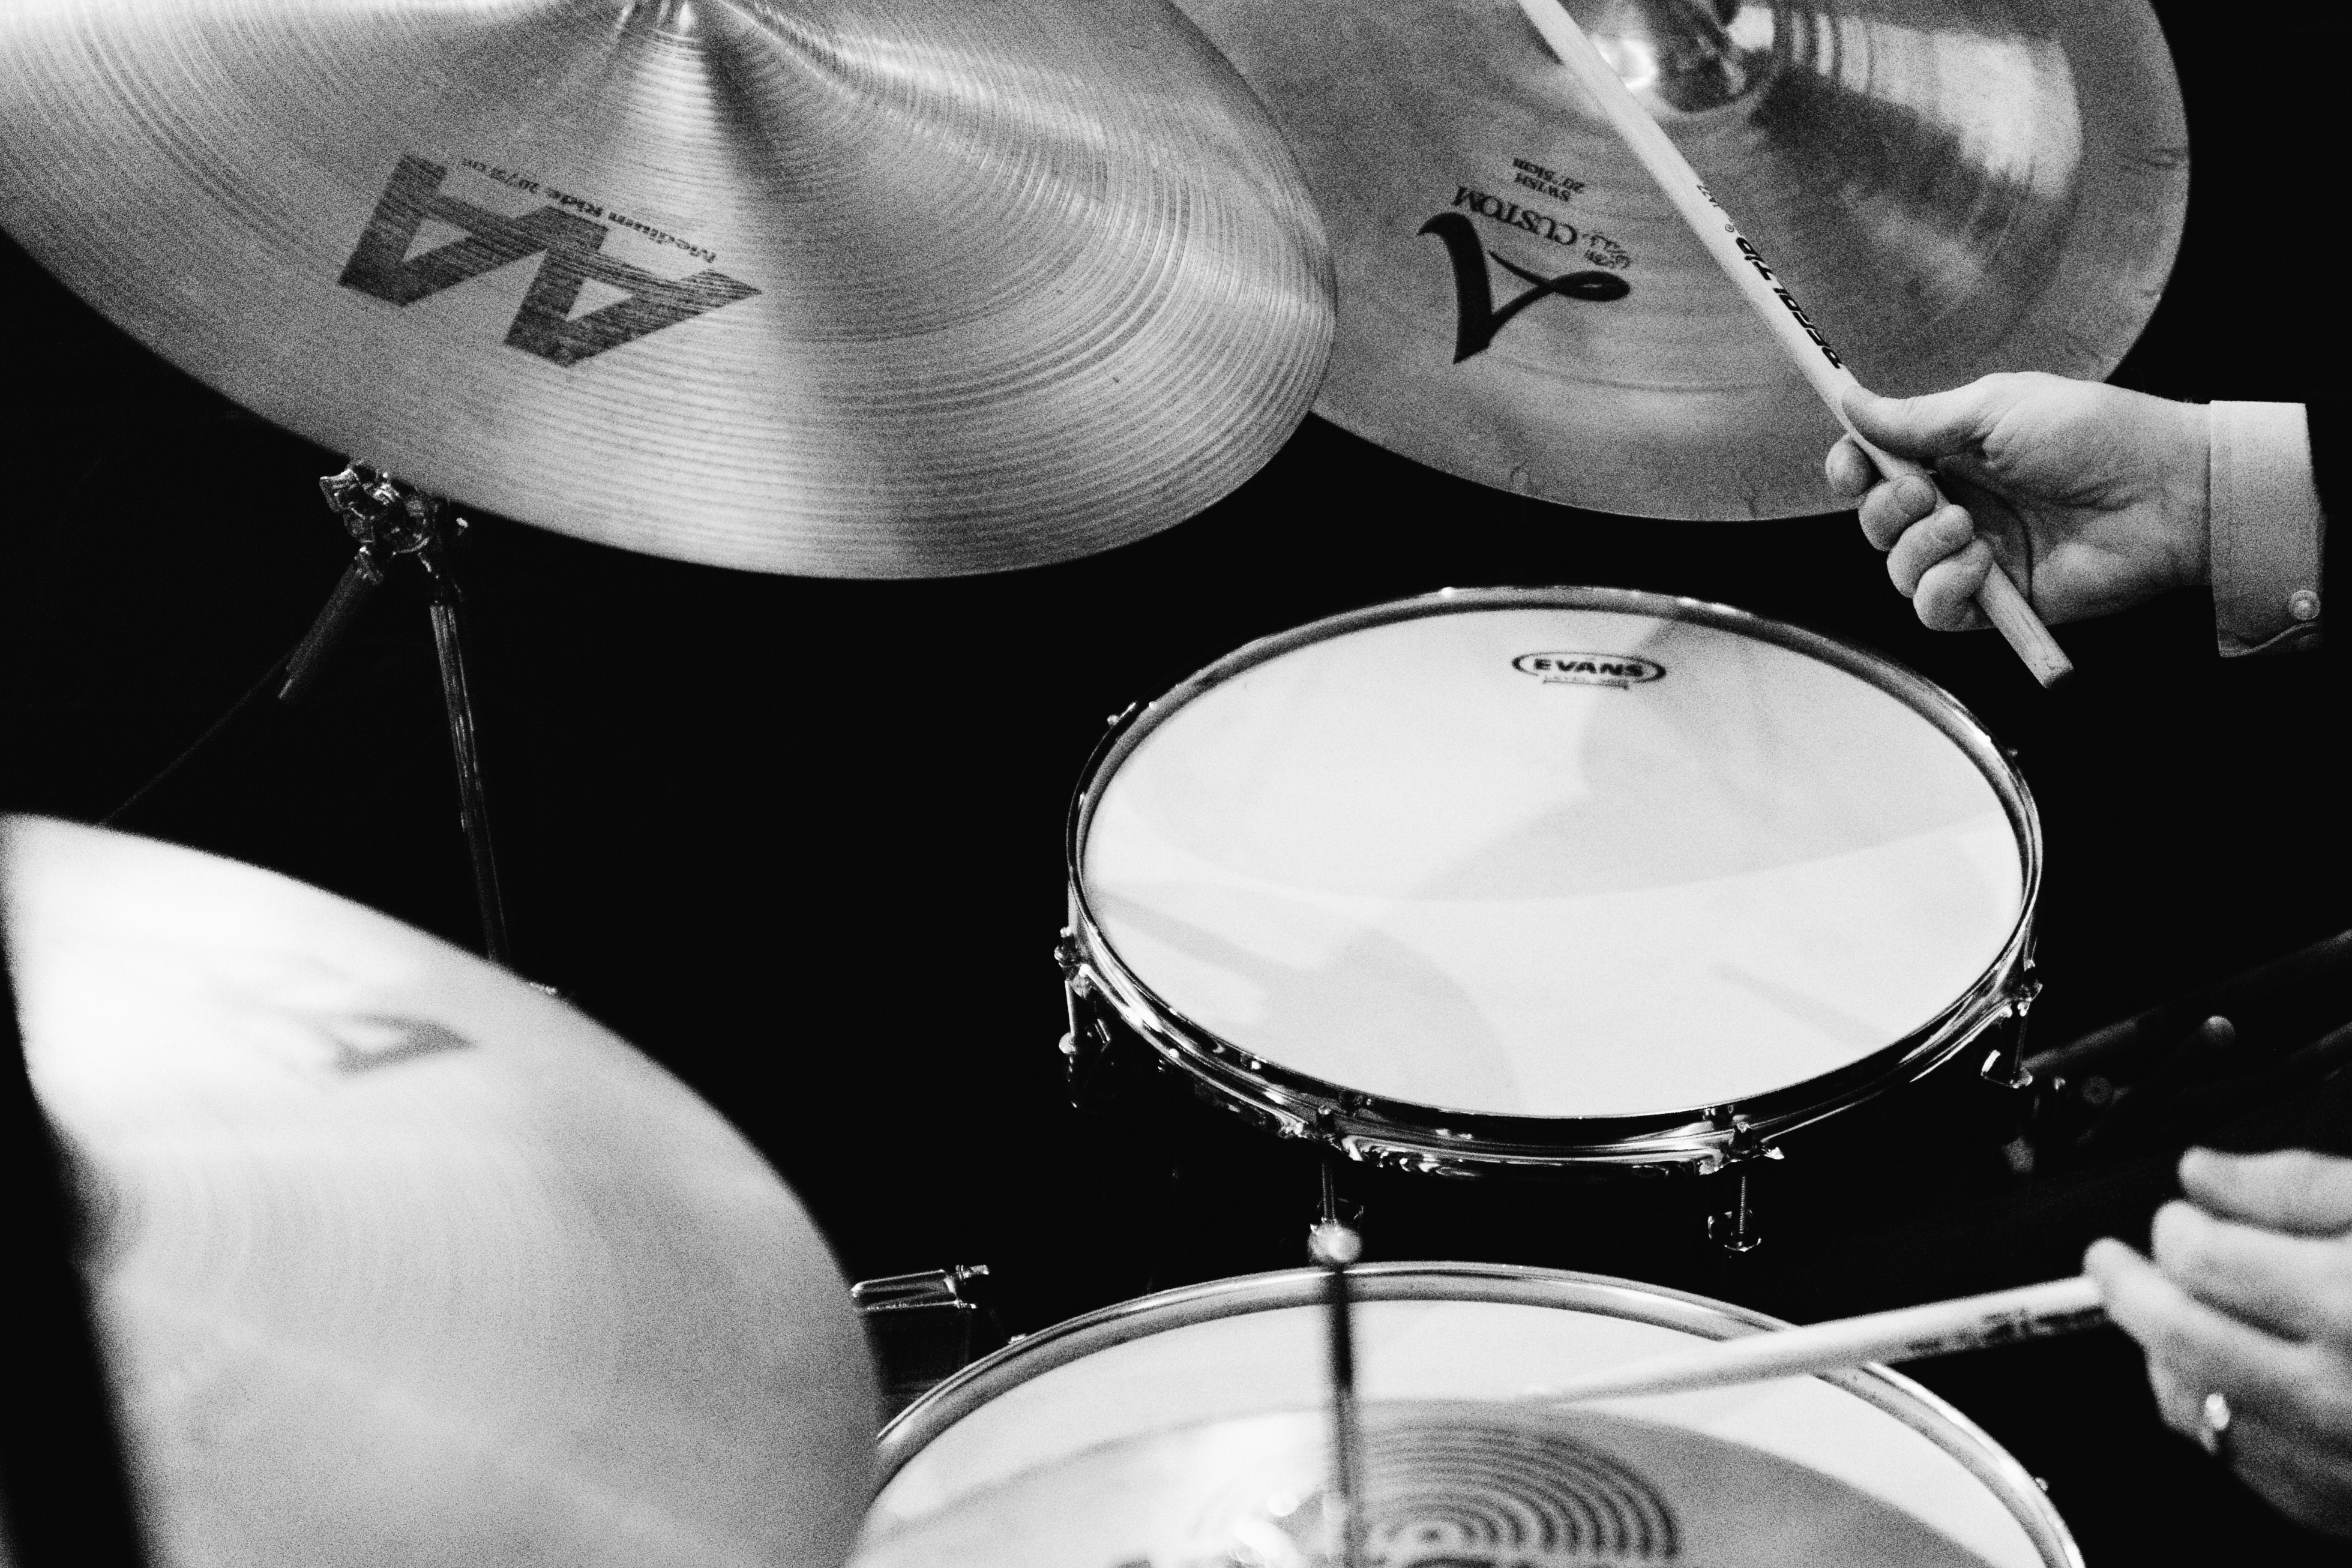 grayscale photography of man playing drums